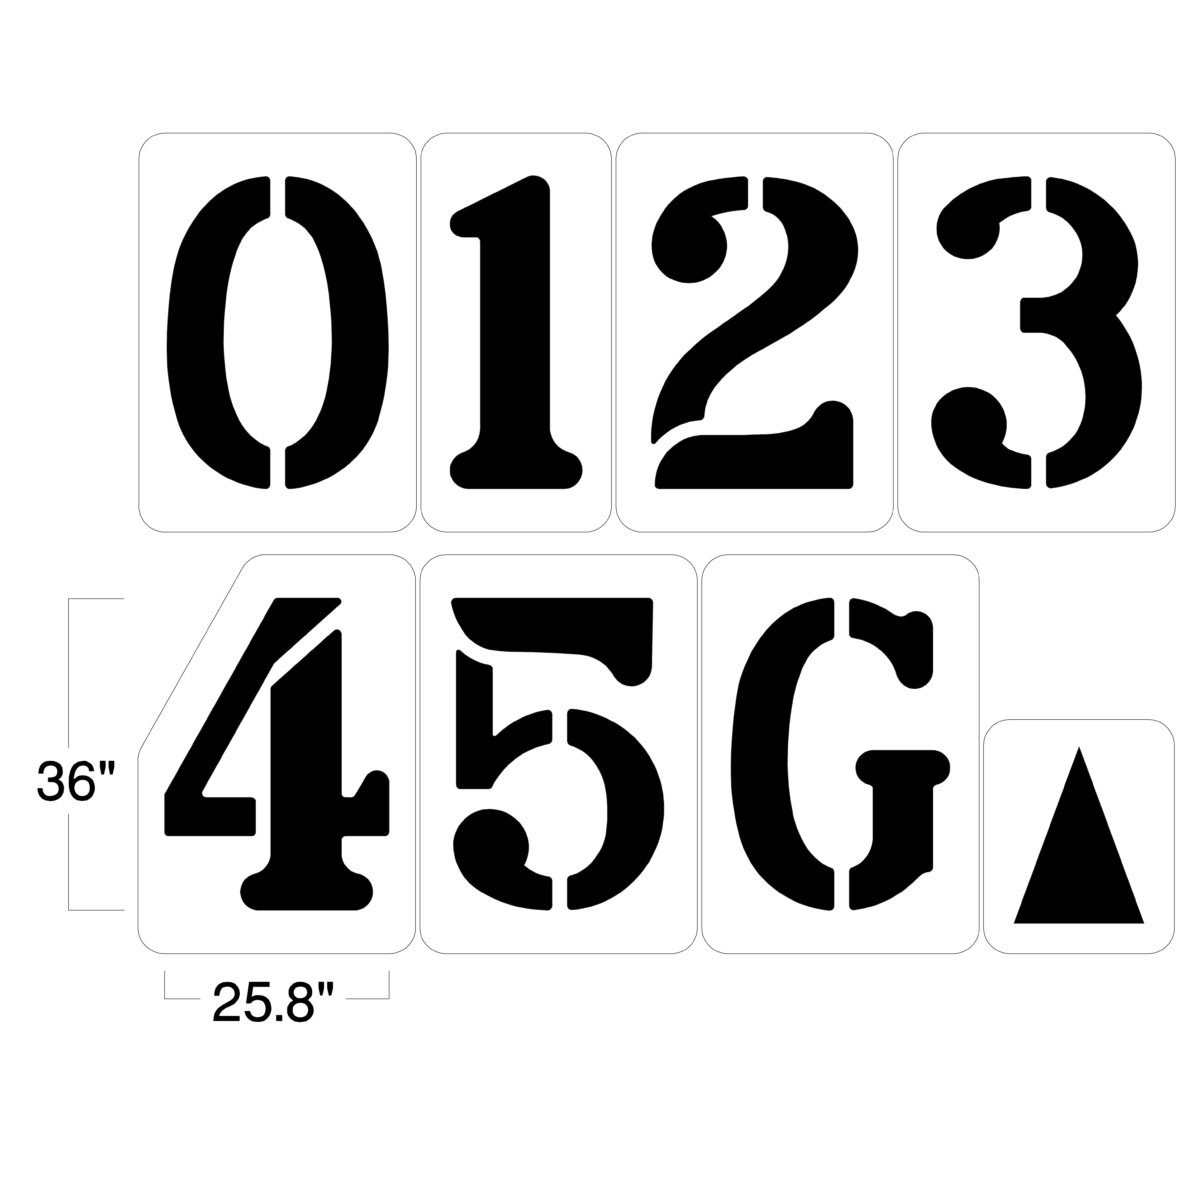 Our 6 foot Football Field number stencil is ideal for painting yardage numbers on your football field. Each football field stencil kit Set includes 0 thru 5, G, and one directional arrow. <hr /> <strong>Easy to use:</strong> Just lay stencil on the field and apply paint <strong>Built to last:</strong>Theseindustrial-strength stencils aredurable and dependable, providing years of use. <strong>Easy to clean:</strong> Dried paint can easily be removed with a scraperor pressure hose. <strong><u>1/8″ (125mil) – Professional grade</u></strong> <ul> <li>The thickest and most durable stencil</li> <li>Will last a lifetime with proper care</li> <li>Ideal for repetitive daily use</li> <li>Can use high pressure hose for easy cleaning</li> <li><em>Lifetime warranty</em></li> </ul> <strong><u>1/16″(63mil) – Light-Duty</u></strong> <ul> <li>Economical and flexible</li> <li>Great for curves and uneven surfaces</li> <li>Perfect for one time projects or occasional use</li> </ul>